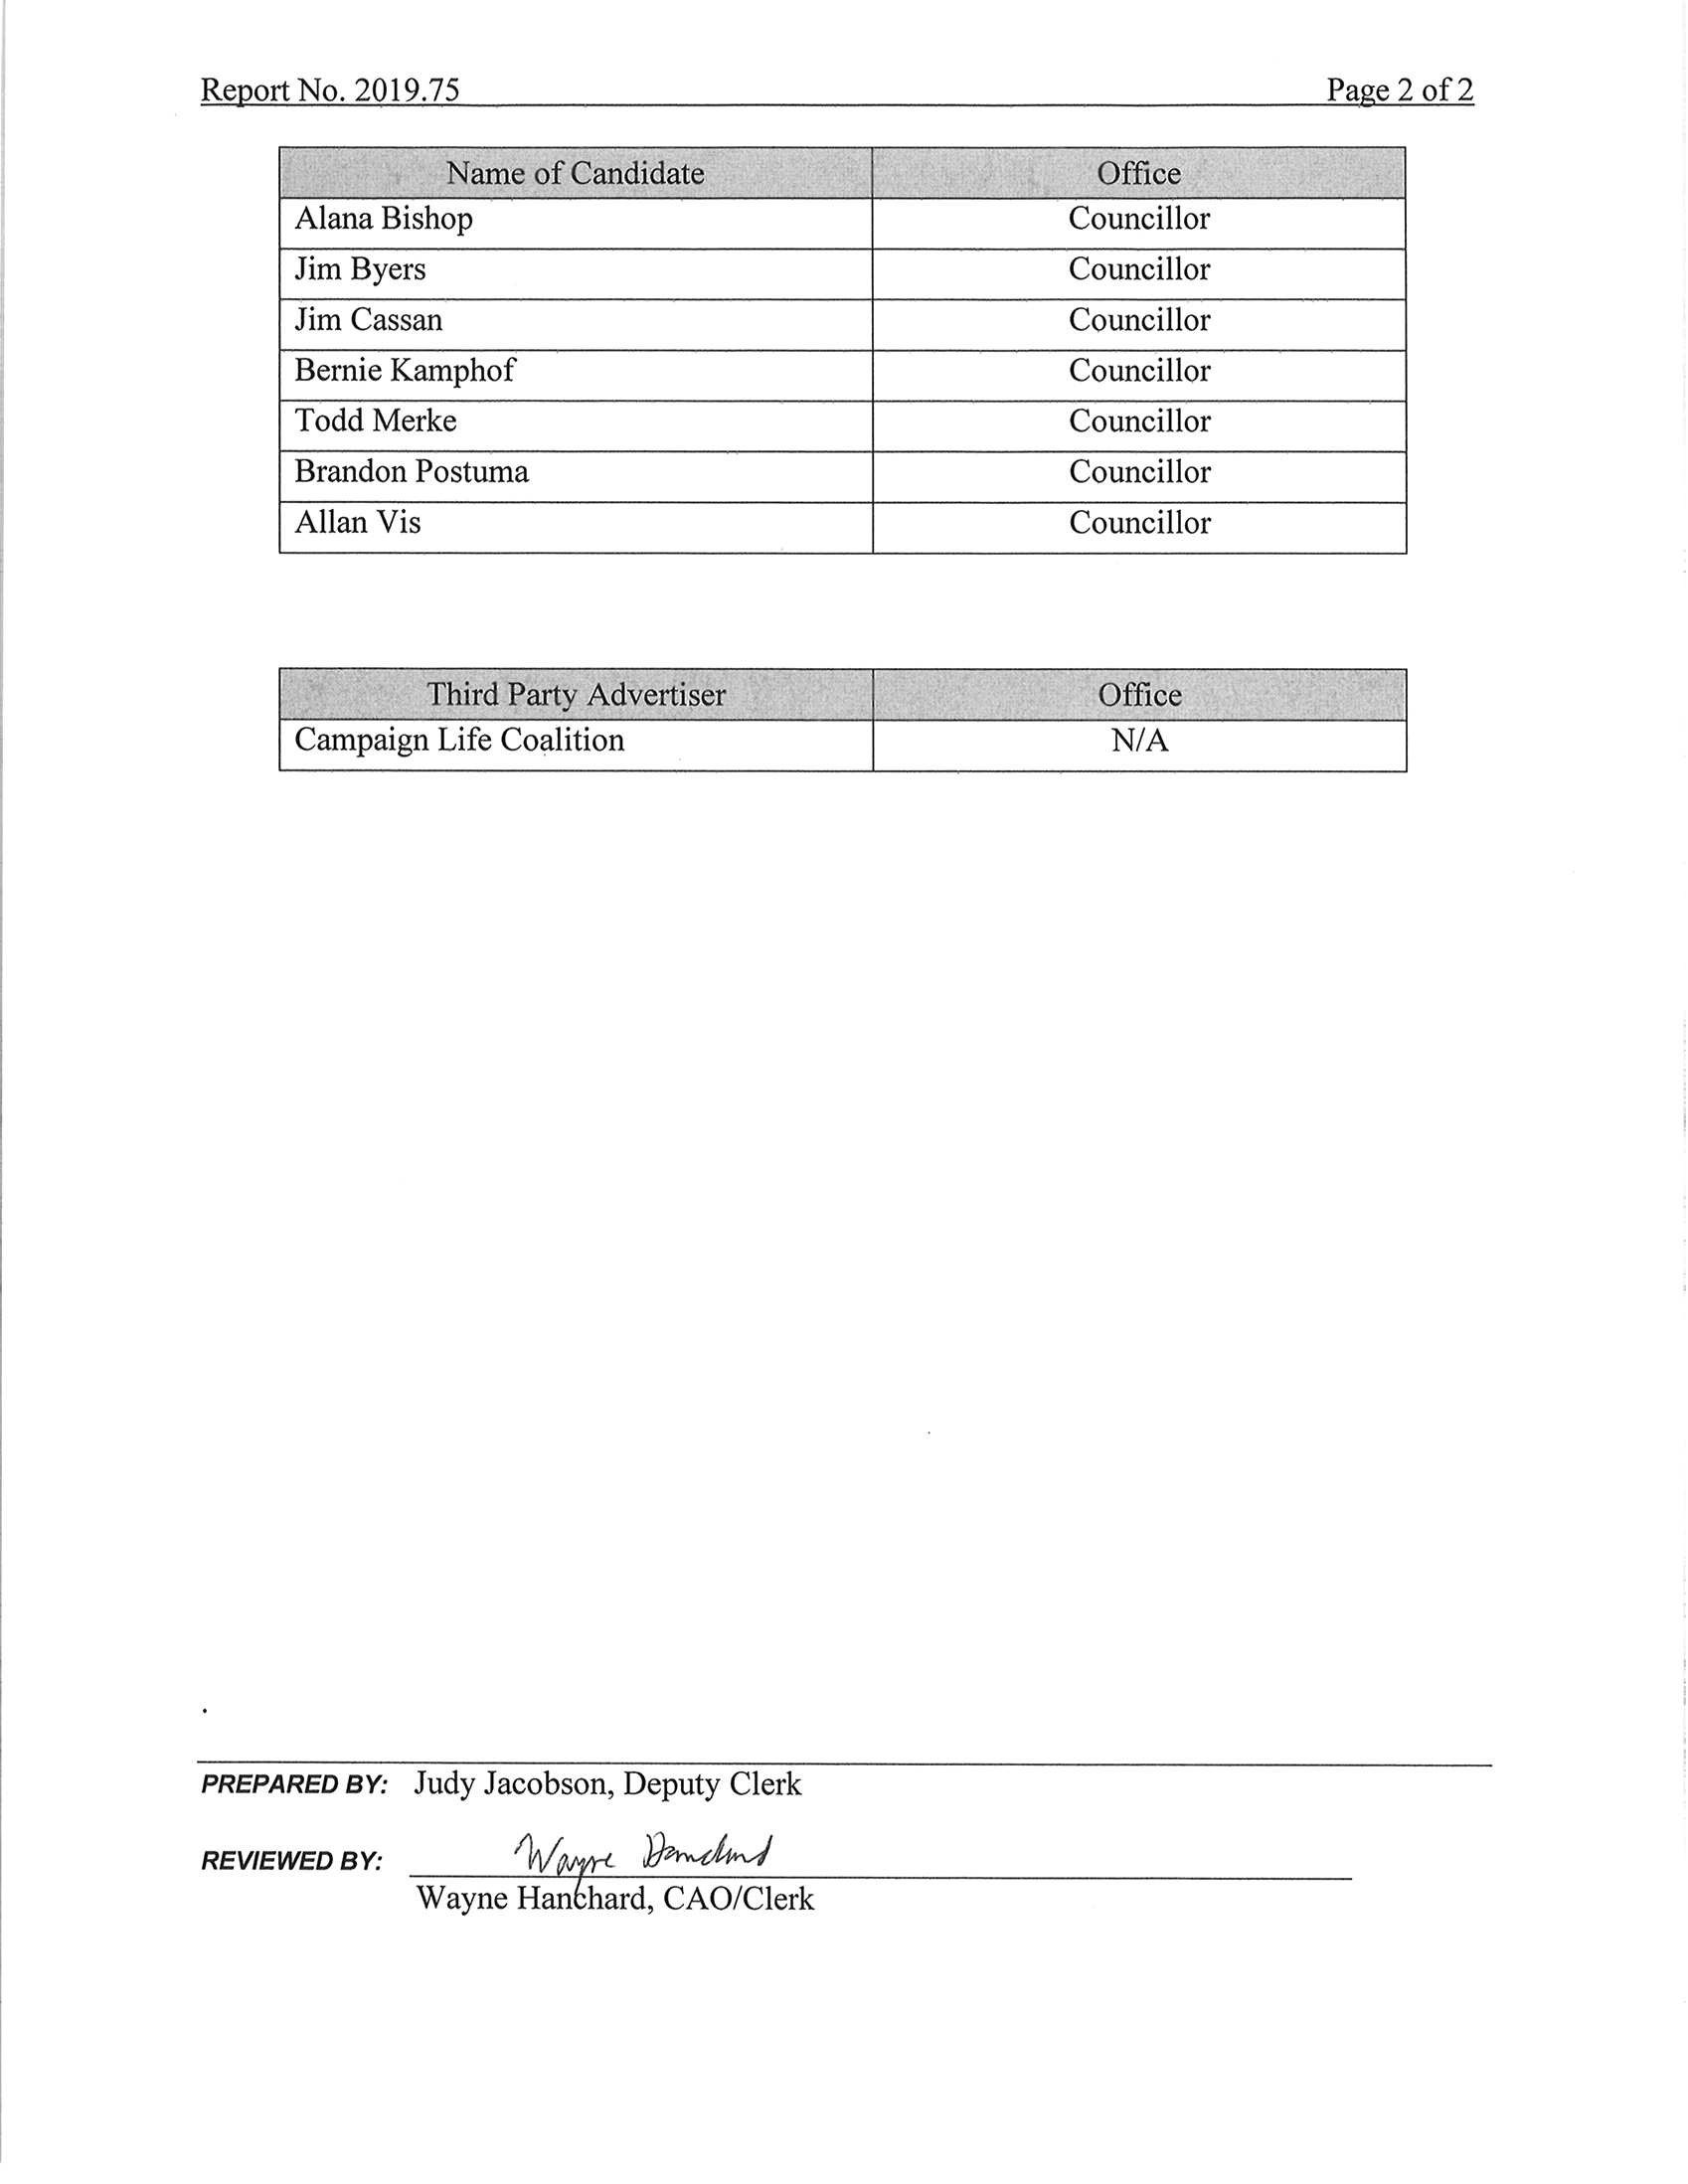 Report 2019.75 - Municipal Election 2018 - Candidates Financial Statements_Page_2.jpg